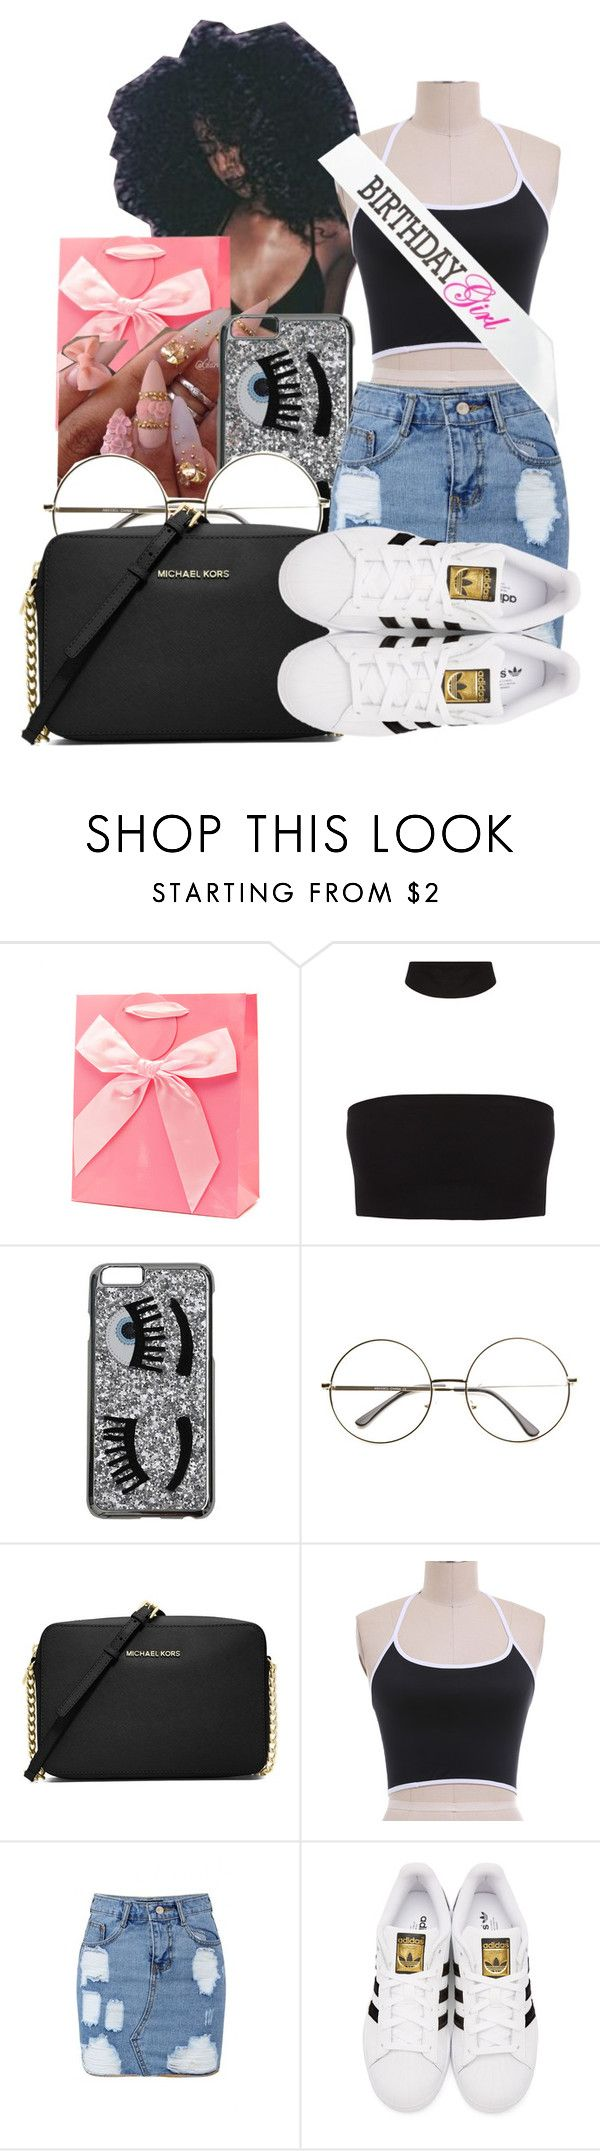 """Outfit For BDay Dinner 👑💸🚺🎉"" by shamyadanyel ❤ liked on Polyvore featuring Chiara Ferragni, MICHAEL Michael Kors, WithChic and adidas Originals"